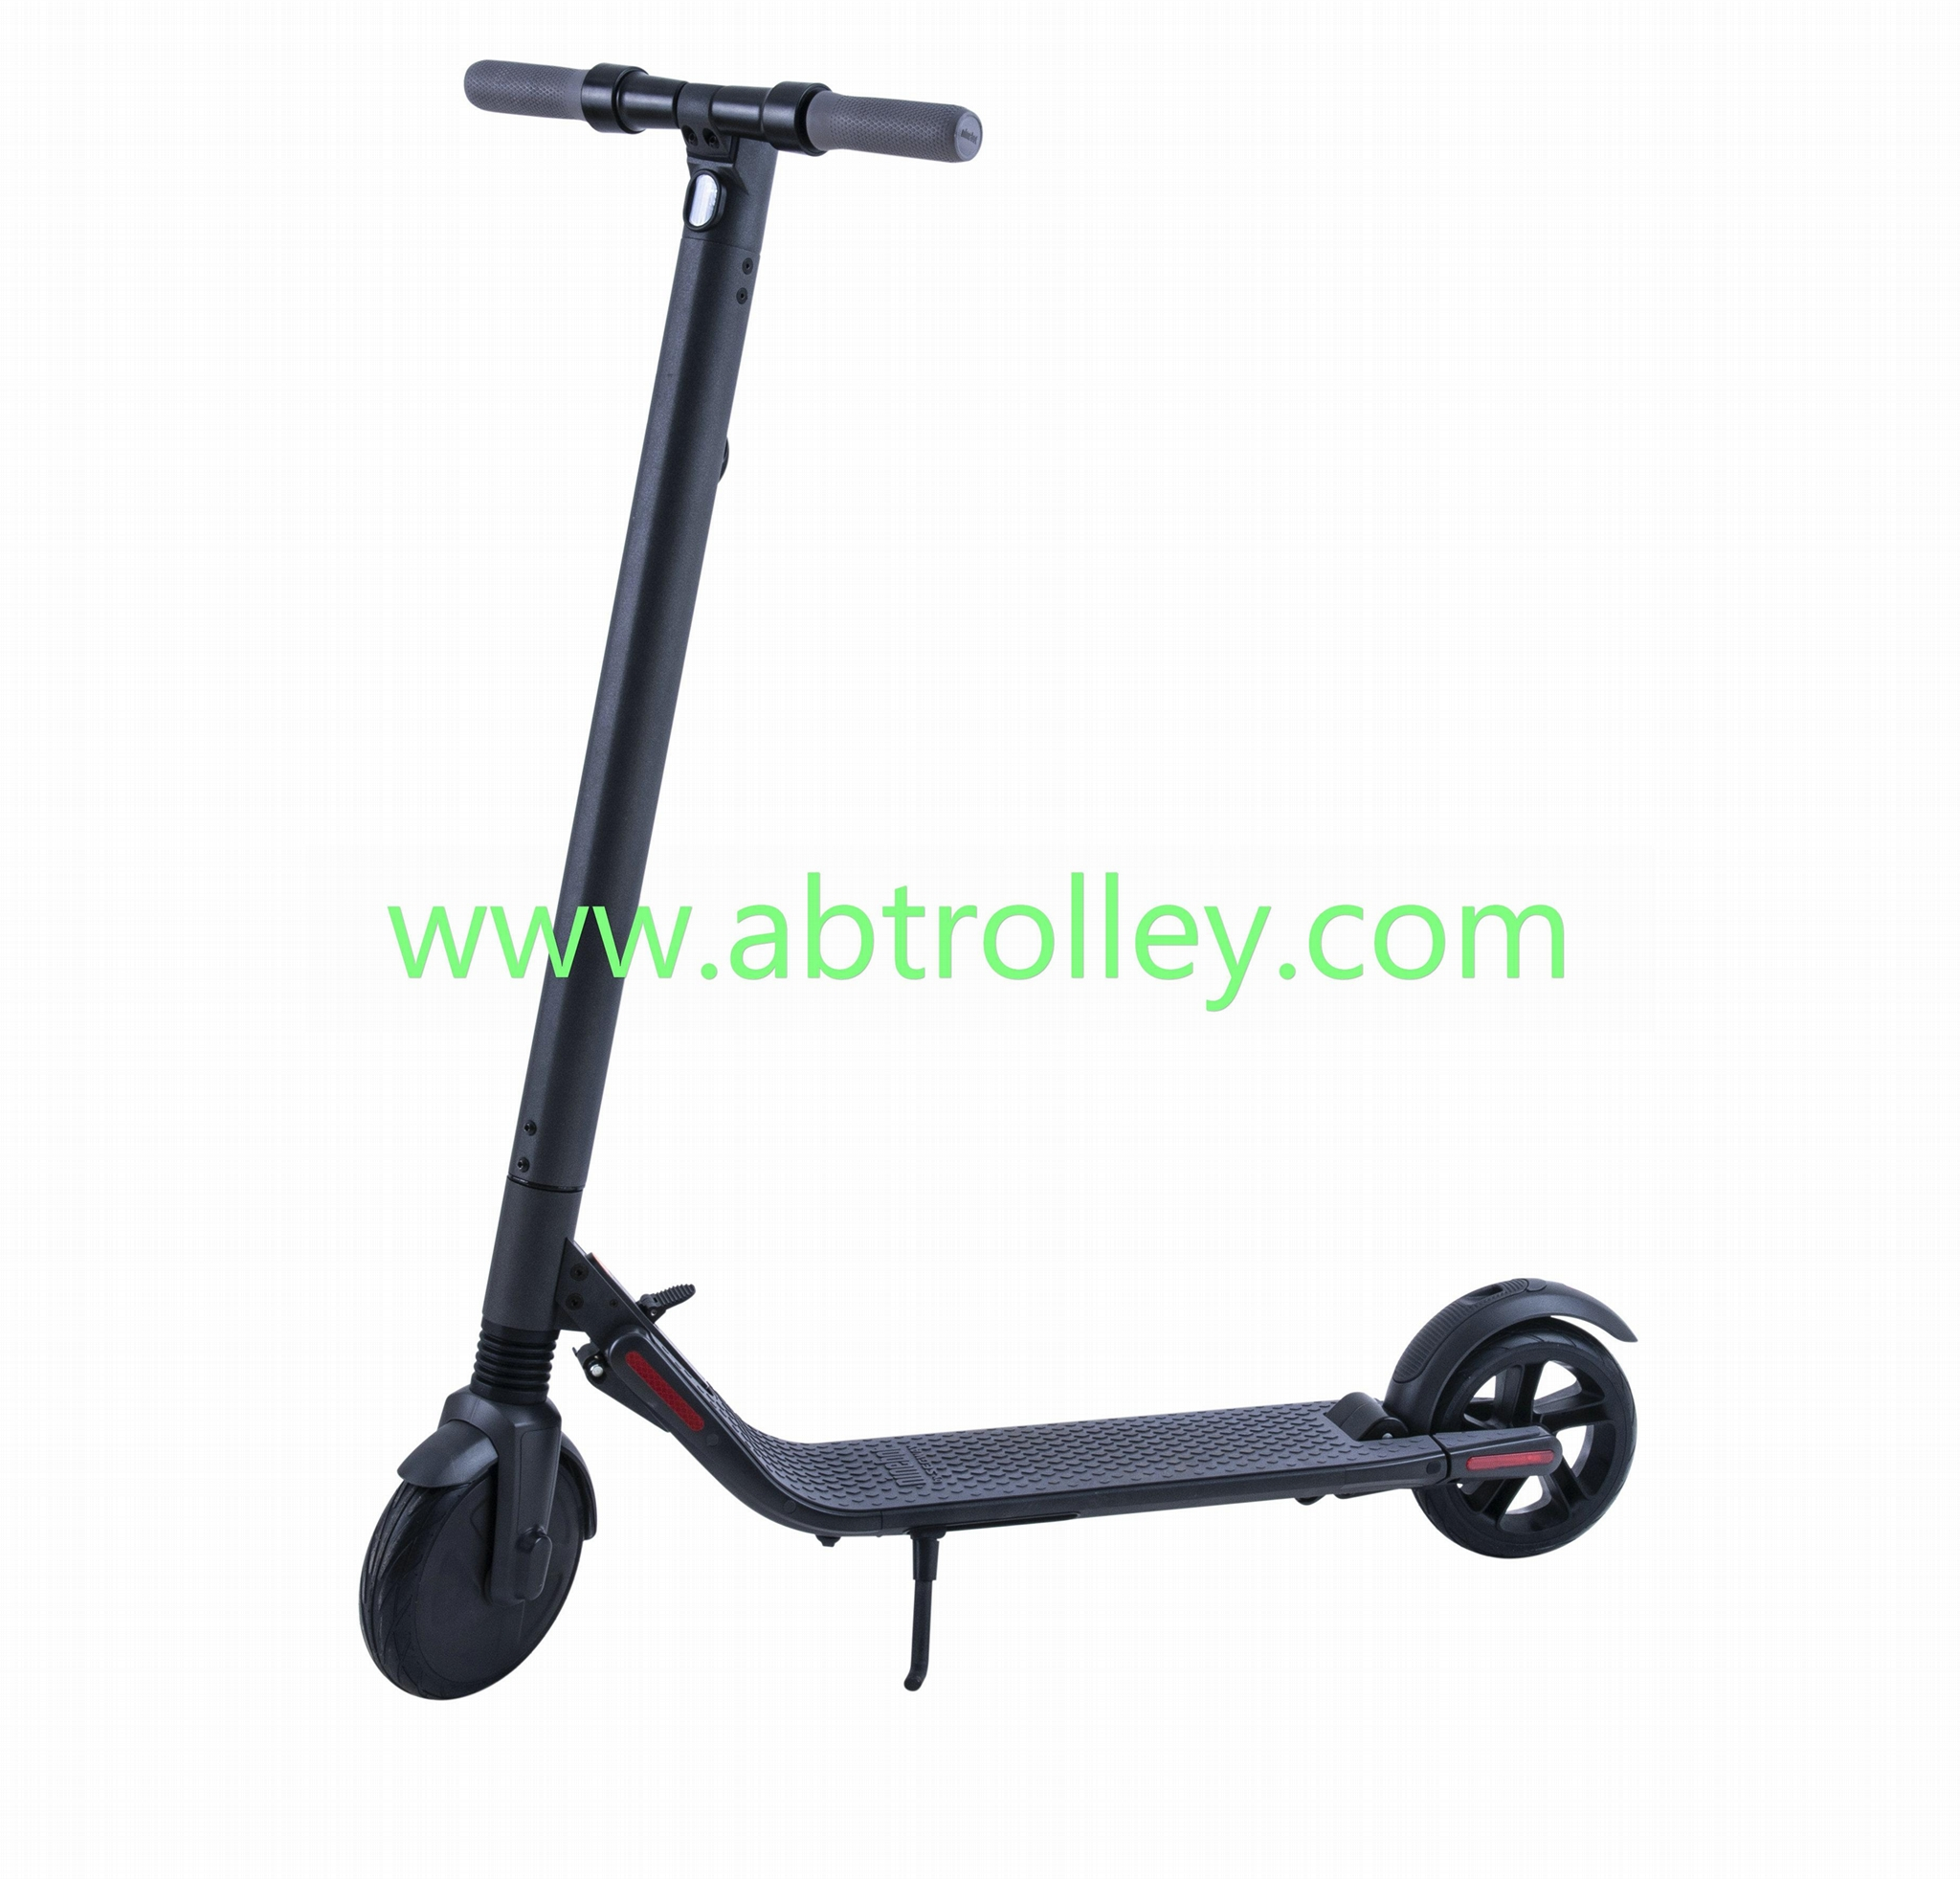 Hot manufactory wholesale electric aluminium scooter electric scooter 1